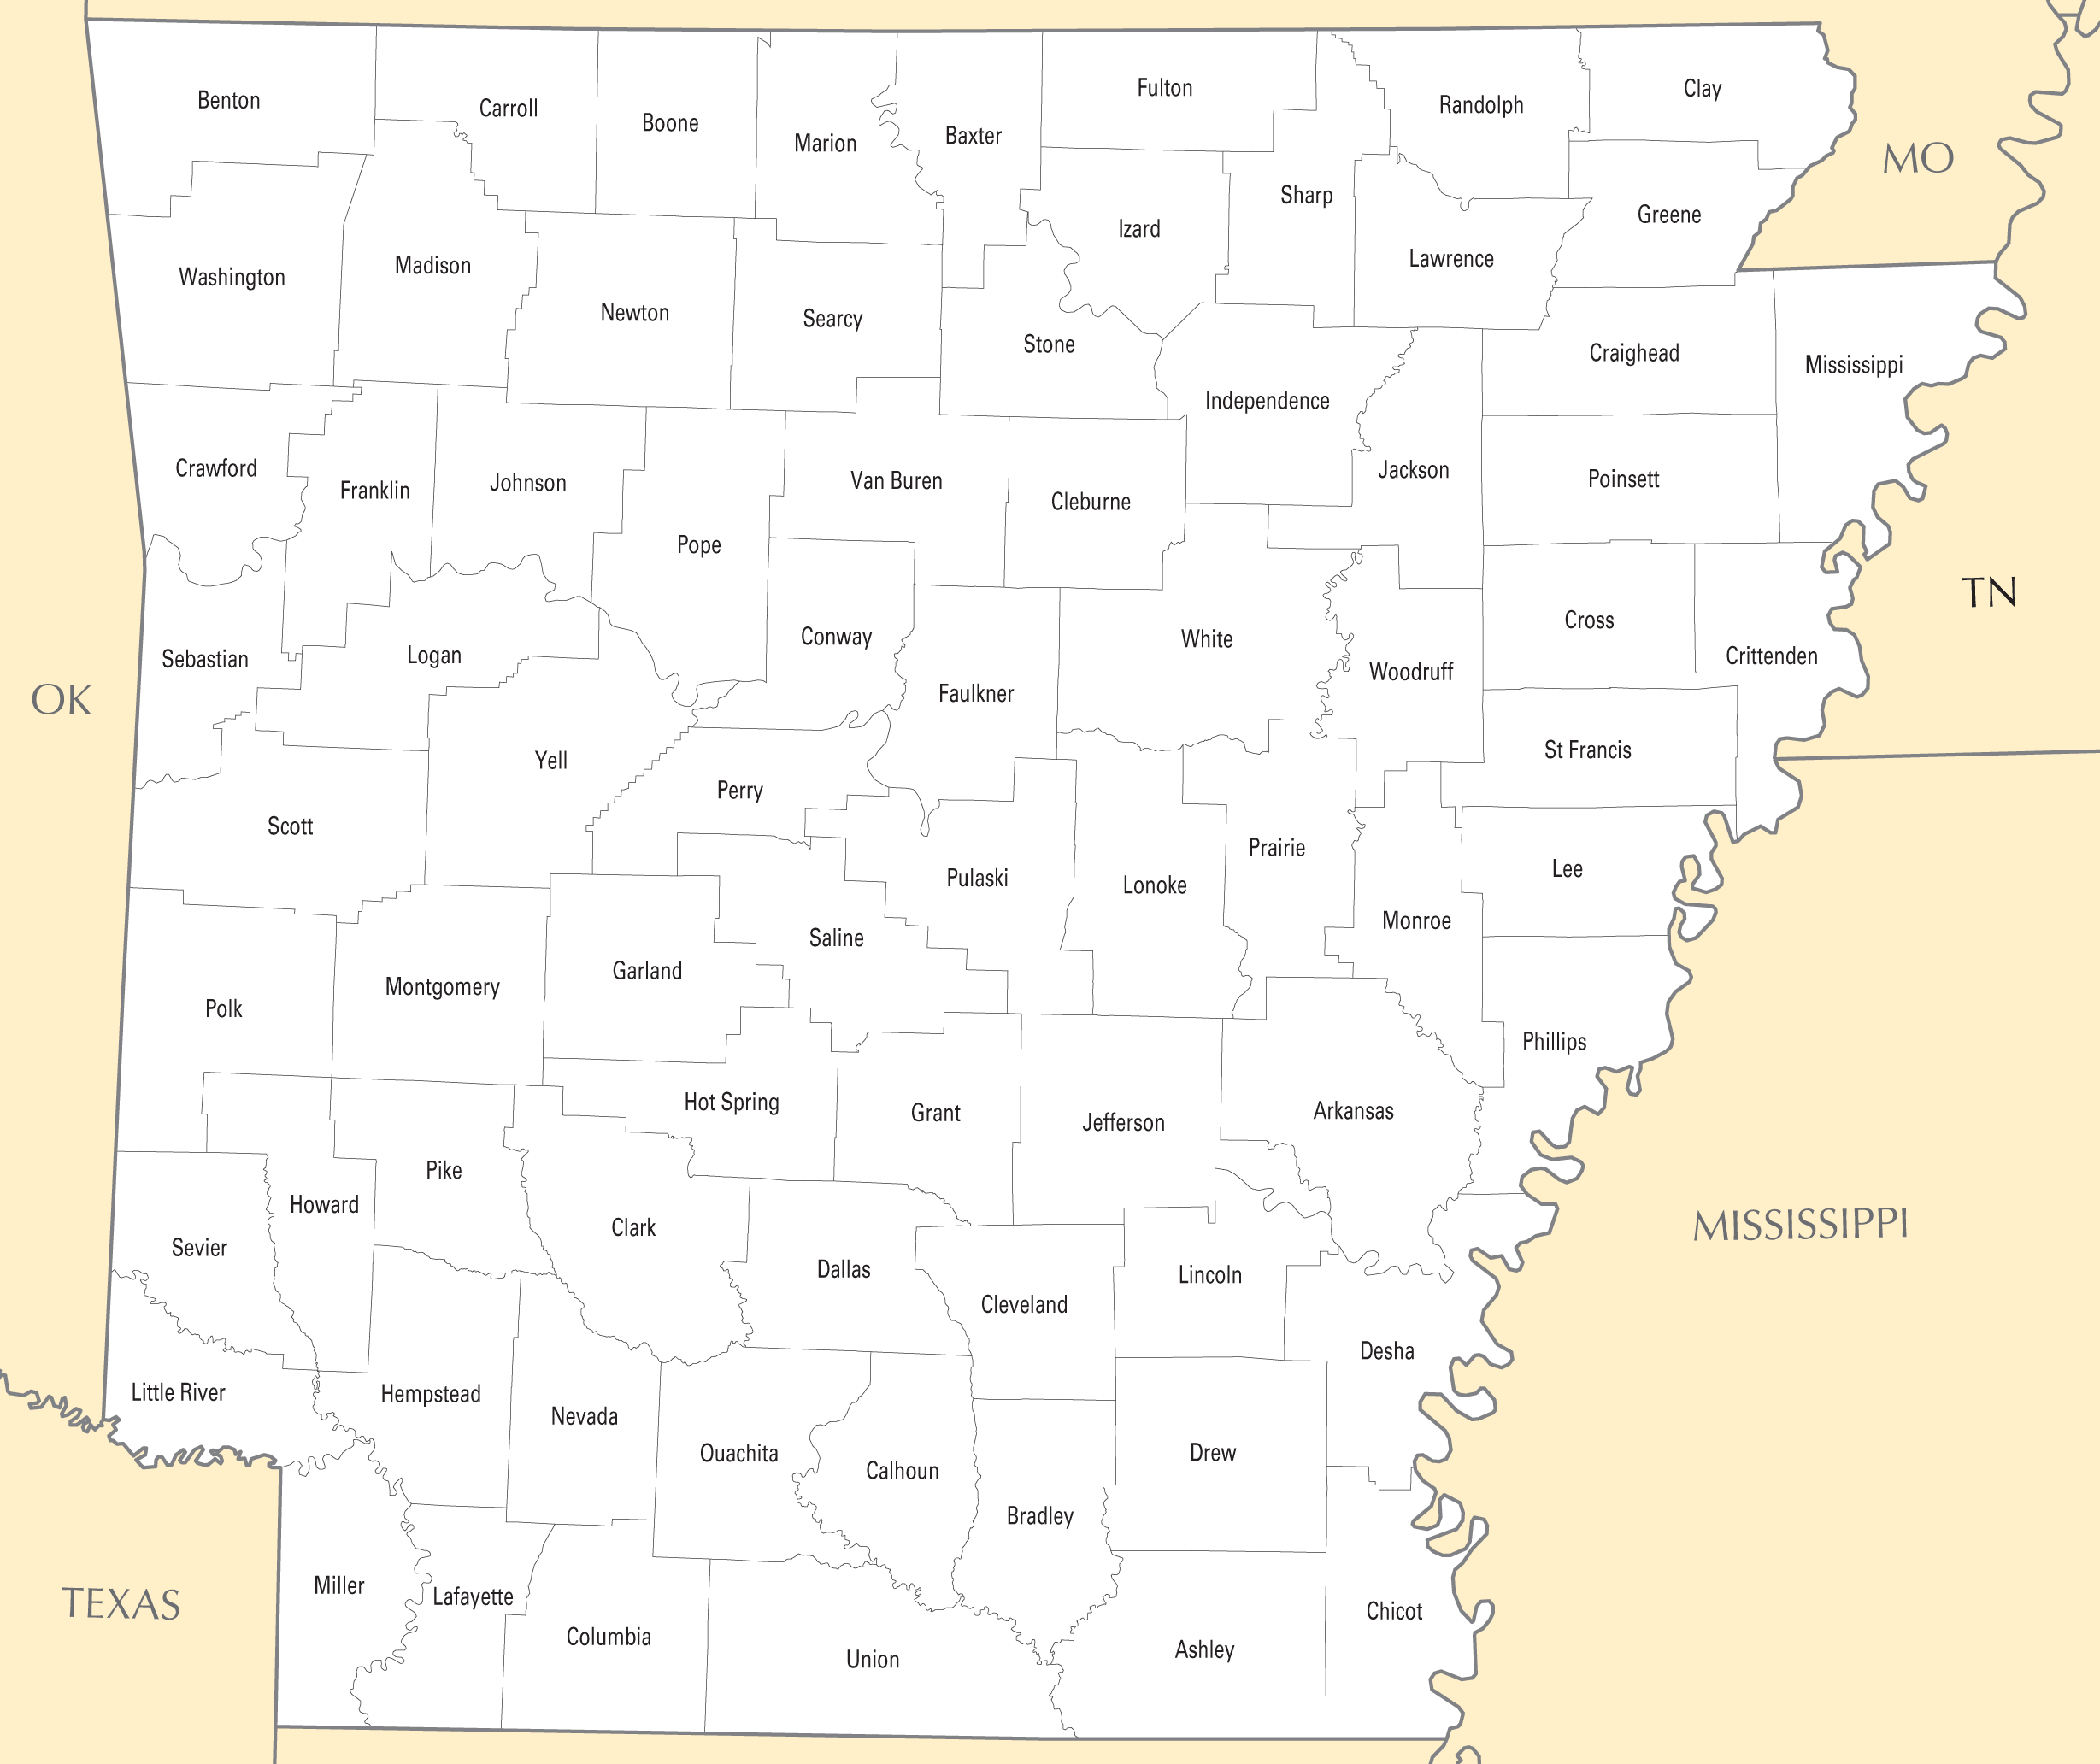 Arkansas County Map • Mapsof.net on map of transportation, ar counties, map of scott, map of johnson, ark counties, map louisiana counties, map of drew, map of cross, map showing counties in arkansas, arkansas state map with counties, map florida counties, map california counties, map of arizona wildfires today, map kentucky counties, map mississippi counties, map of little river, map of louisiana parishes, map arkansas counties by population, map of white, map illinois counties,